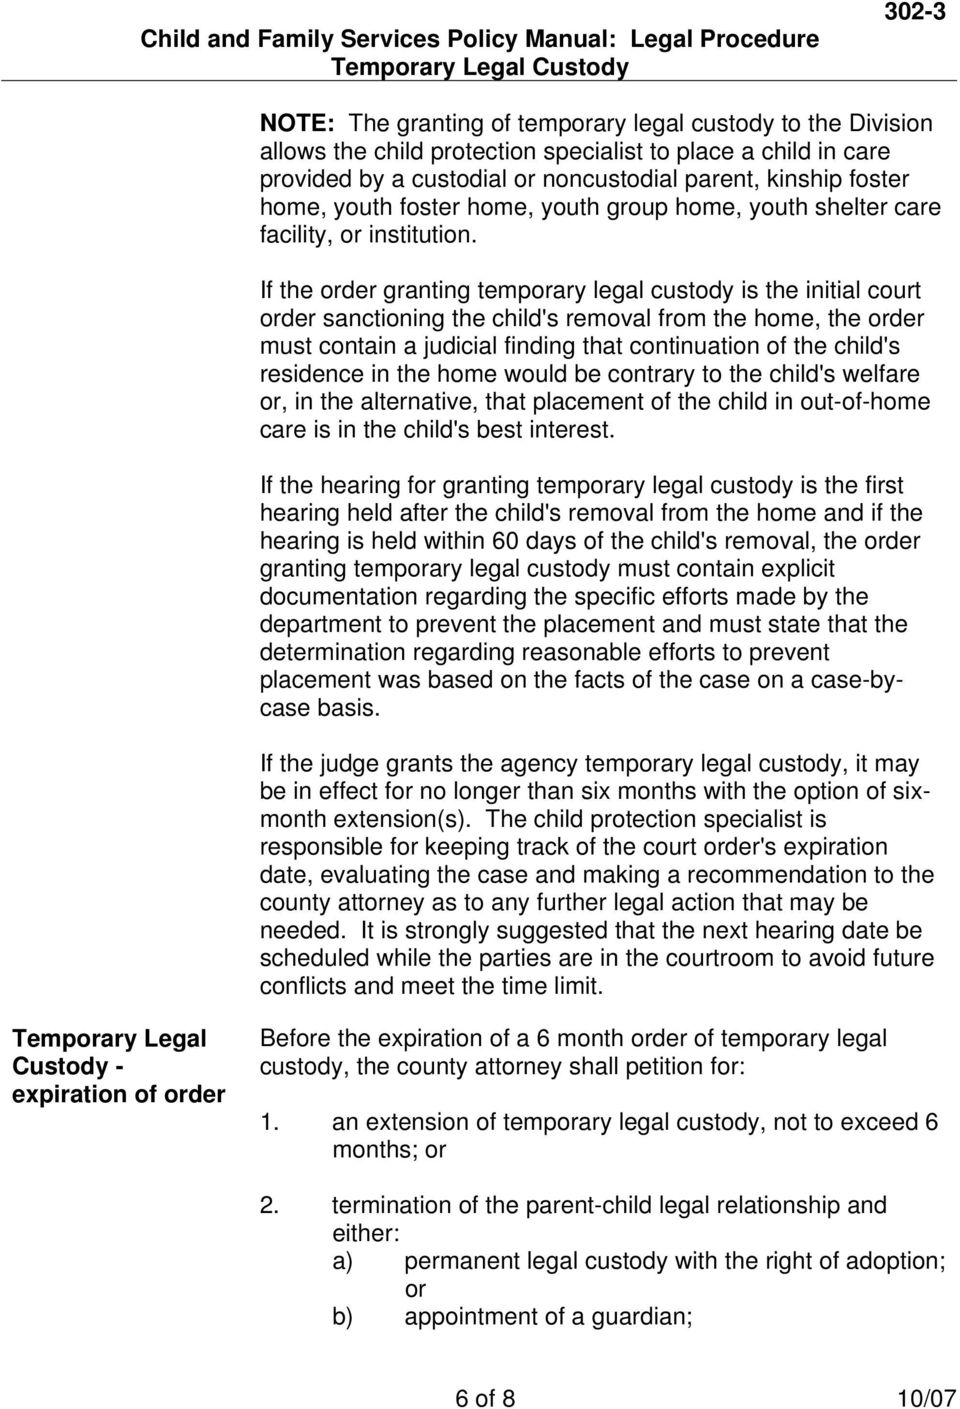 If the order granting temporary legal custody is the initial court order sanctioning the child's removal from the home, the order must contain a judicial finding that continuation of the child's